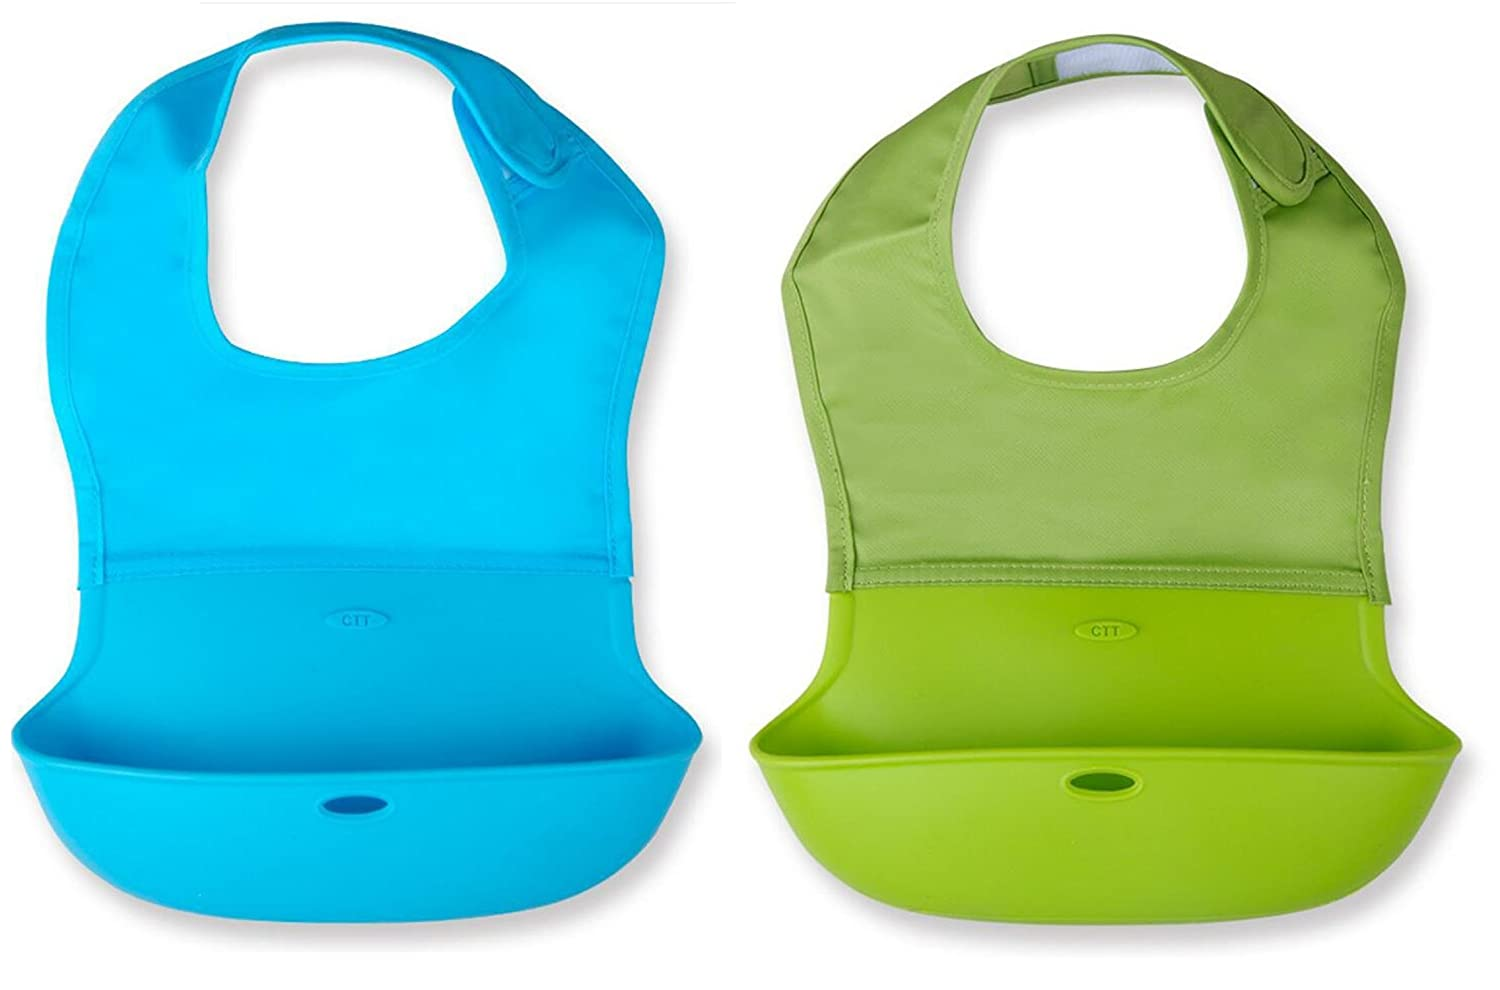 Luliey Car Seat Protector for Leather Seats (2-Pack) CarSeat Cover for Babies (db) LCSP-1/2PCK